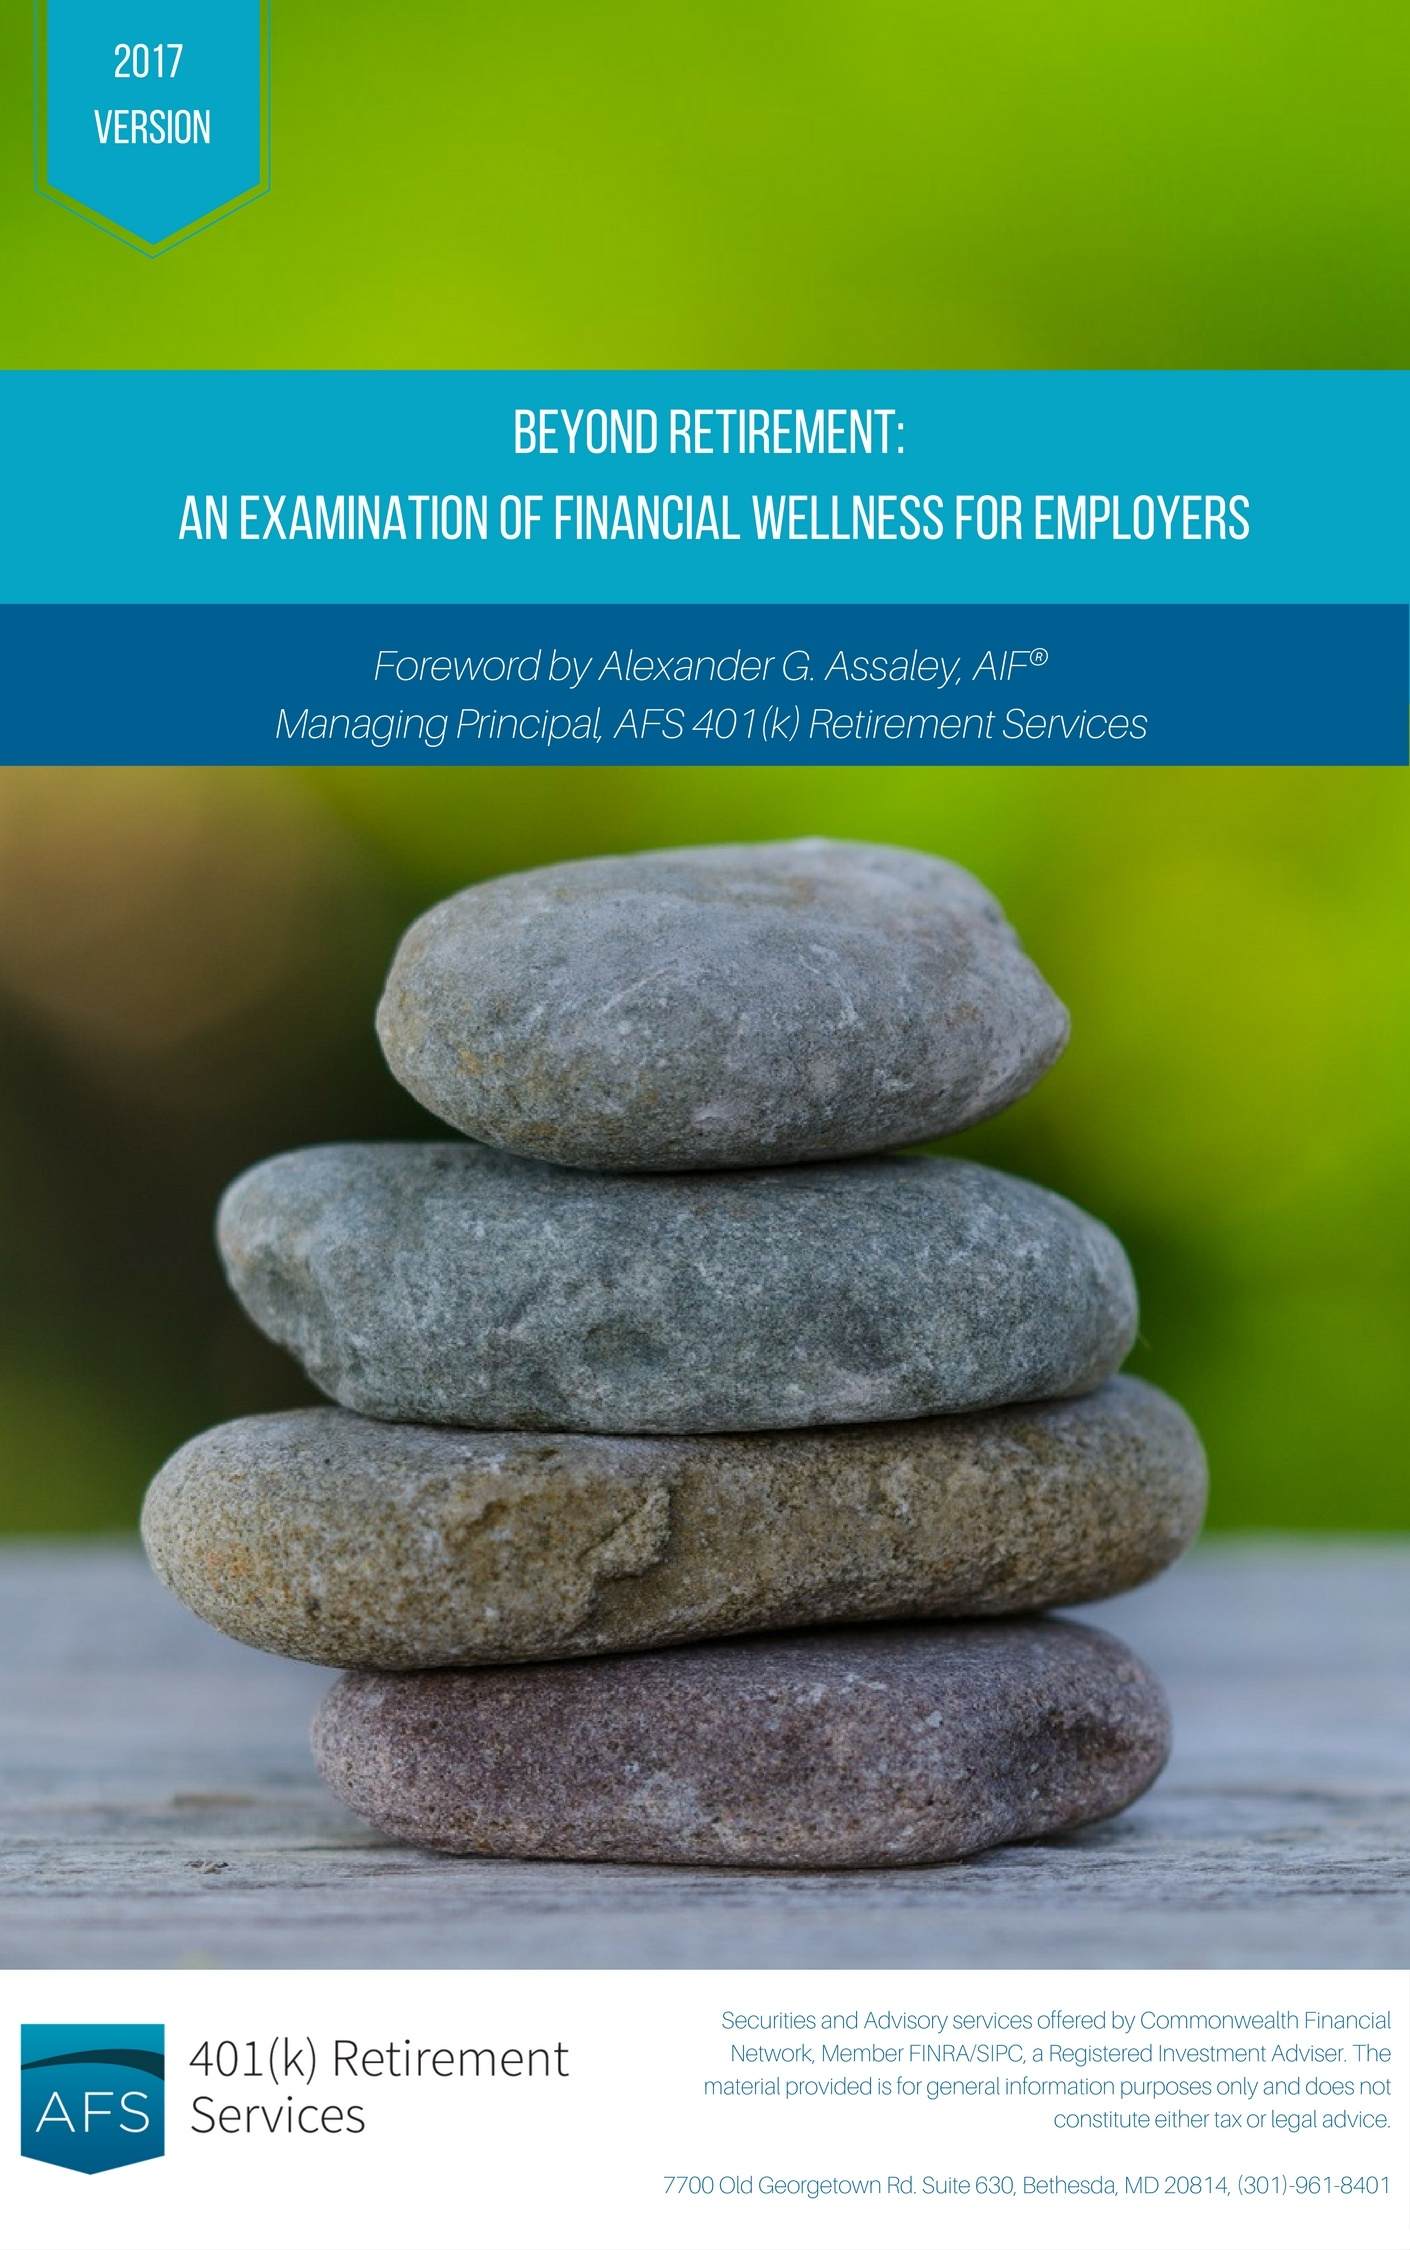 FW White Paper Cover Only-1.jpg